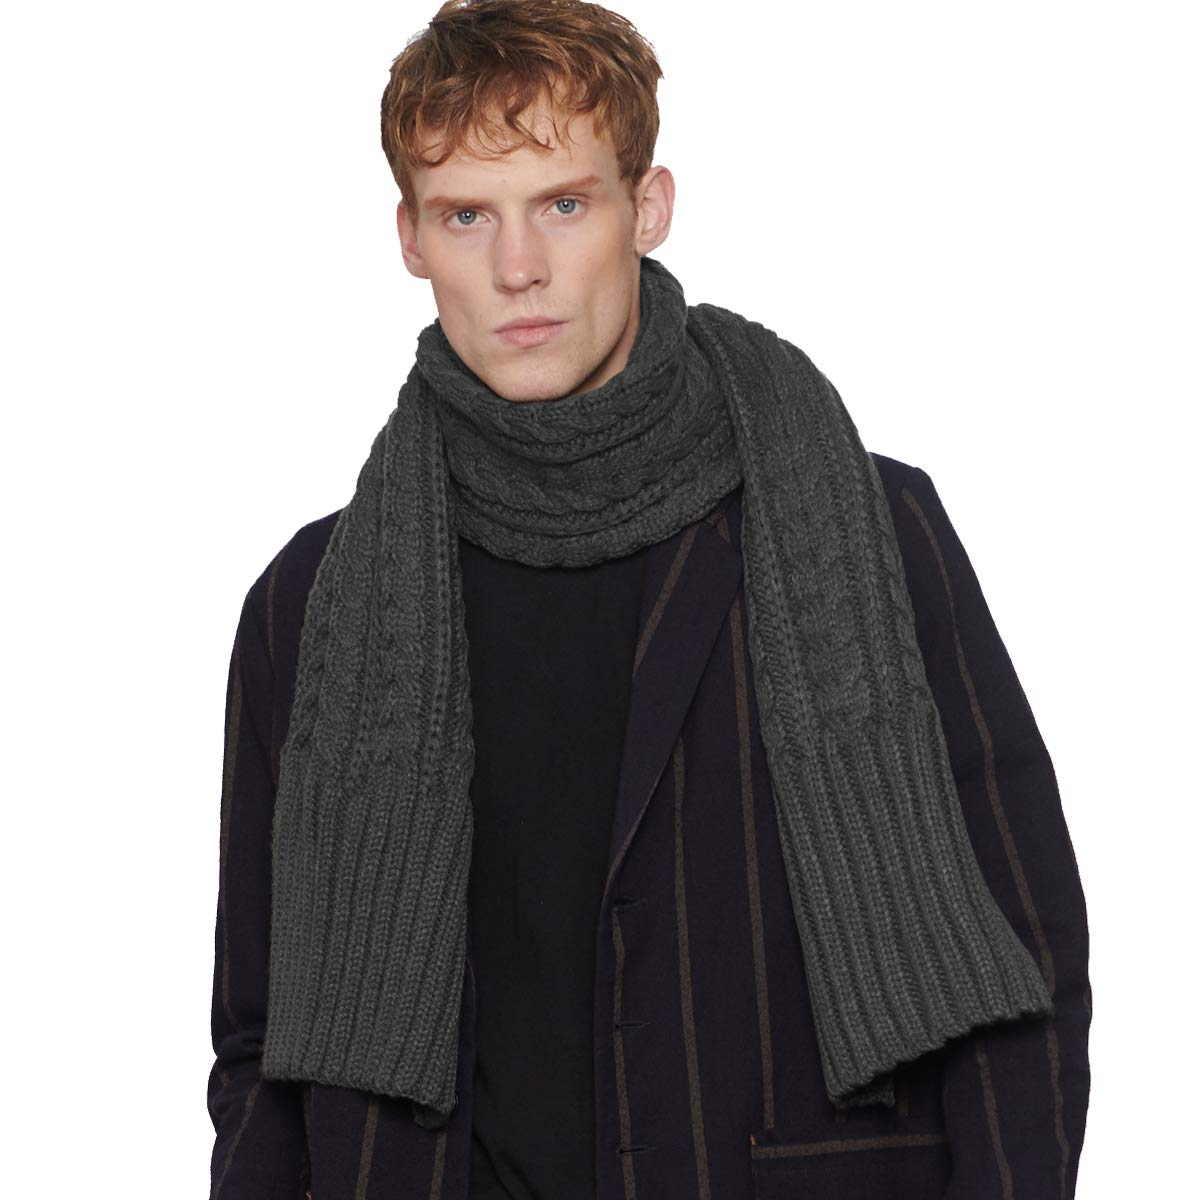 CACUSS Scarf for Men Winter Knit Solid Color Warm Thick Scarf Students Long Trend Casual Infinity Scarf Knitting Trend Scarf Size 70.74×12.58 Inches (Dark gray) by CACUSS (Image #3)